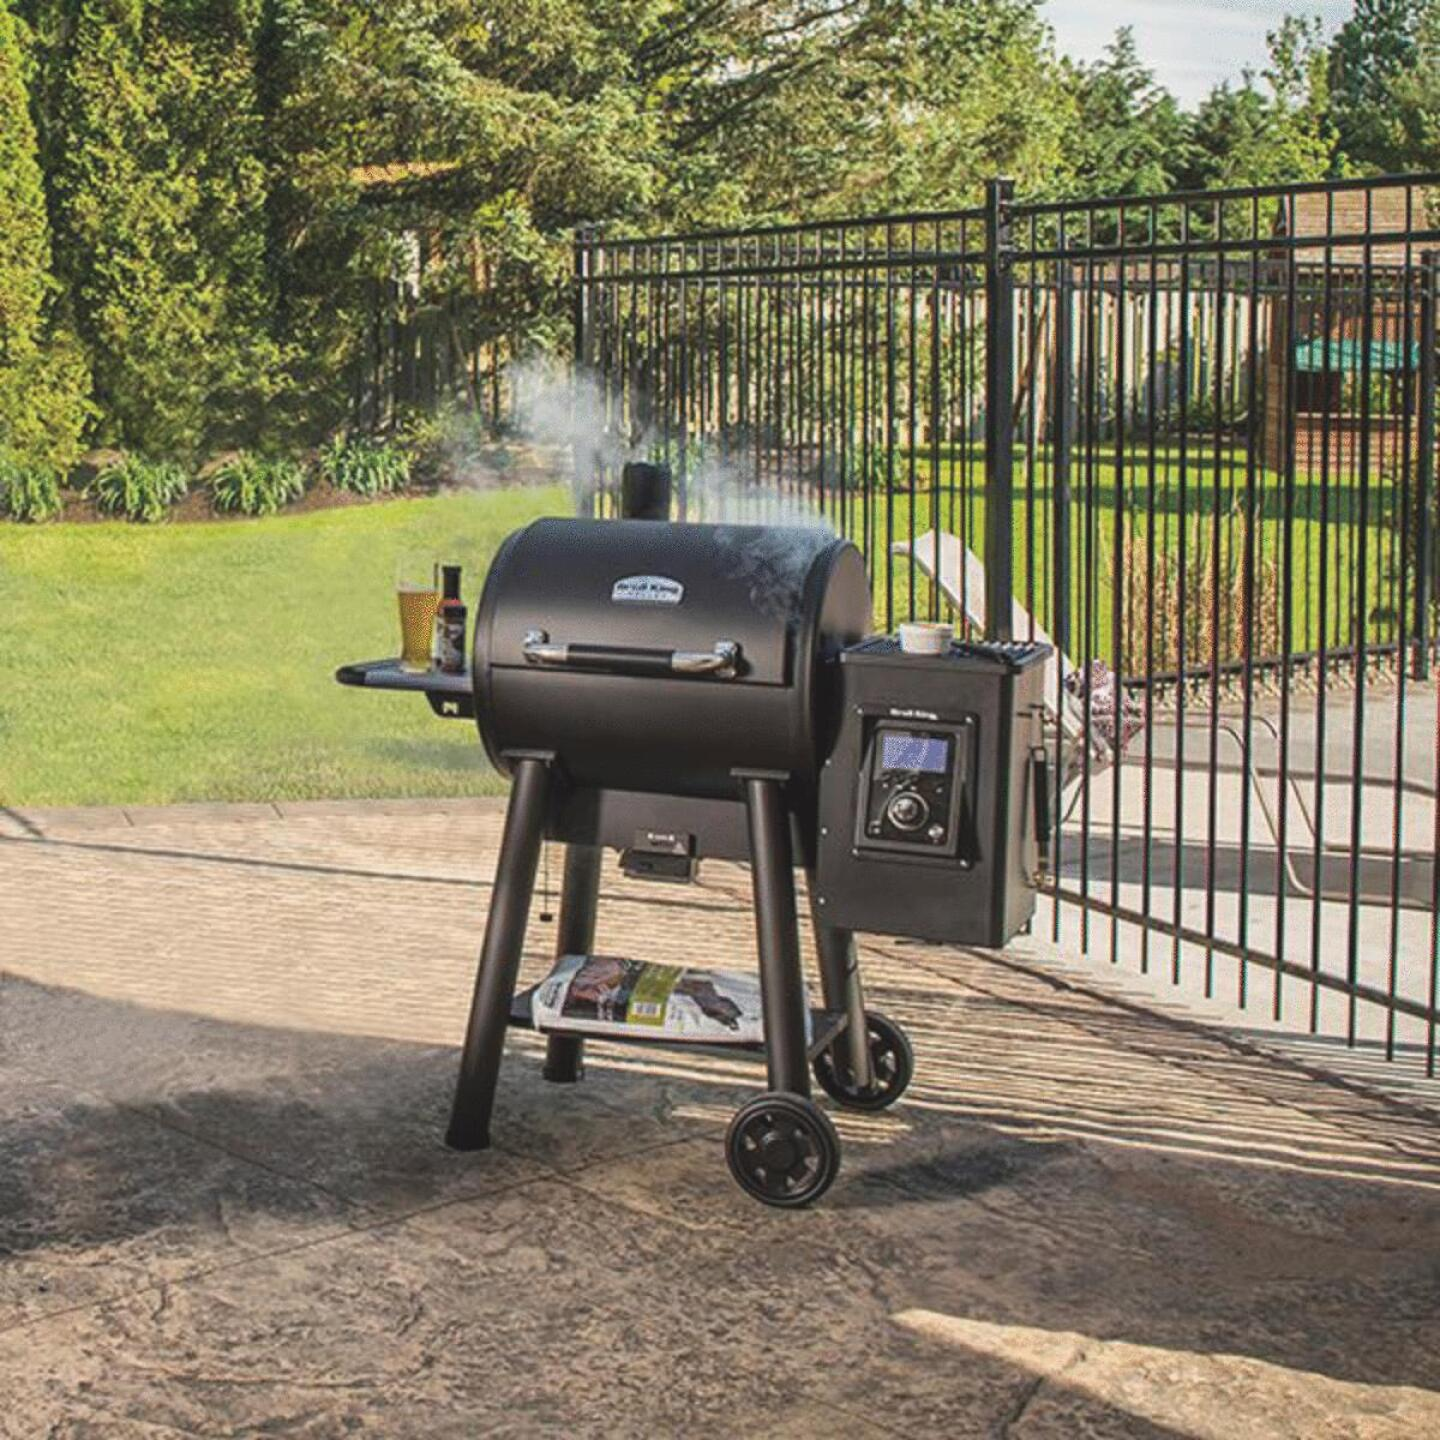 Broil King Regal Pellet 400 Black 690 Sq. In. Grill Image 2